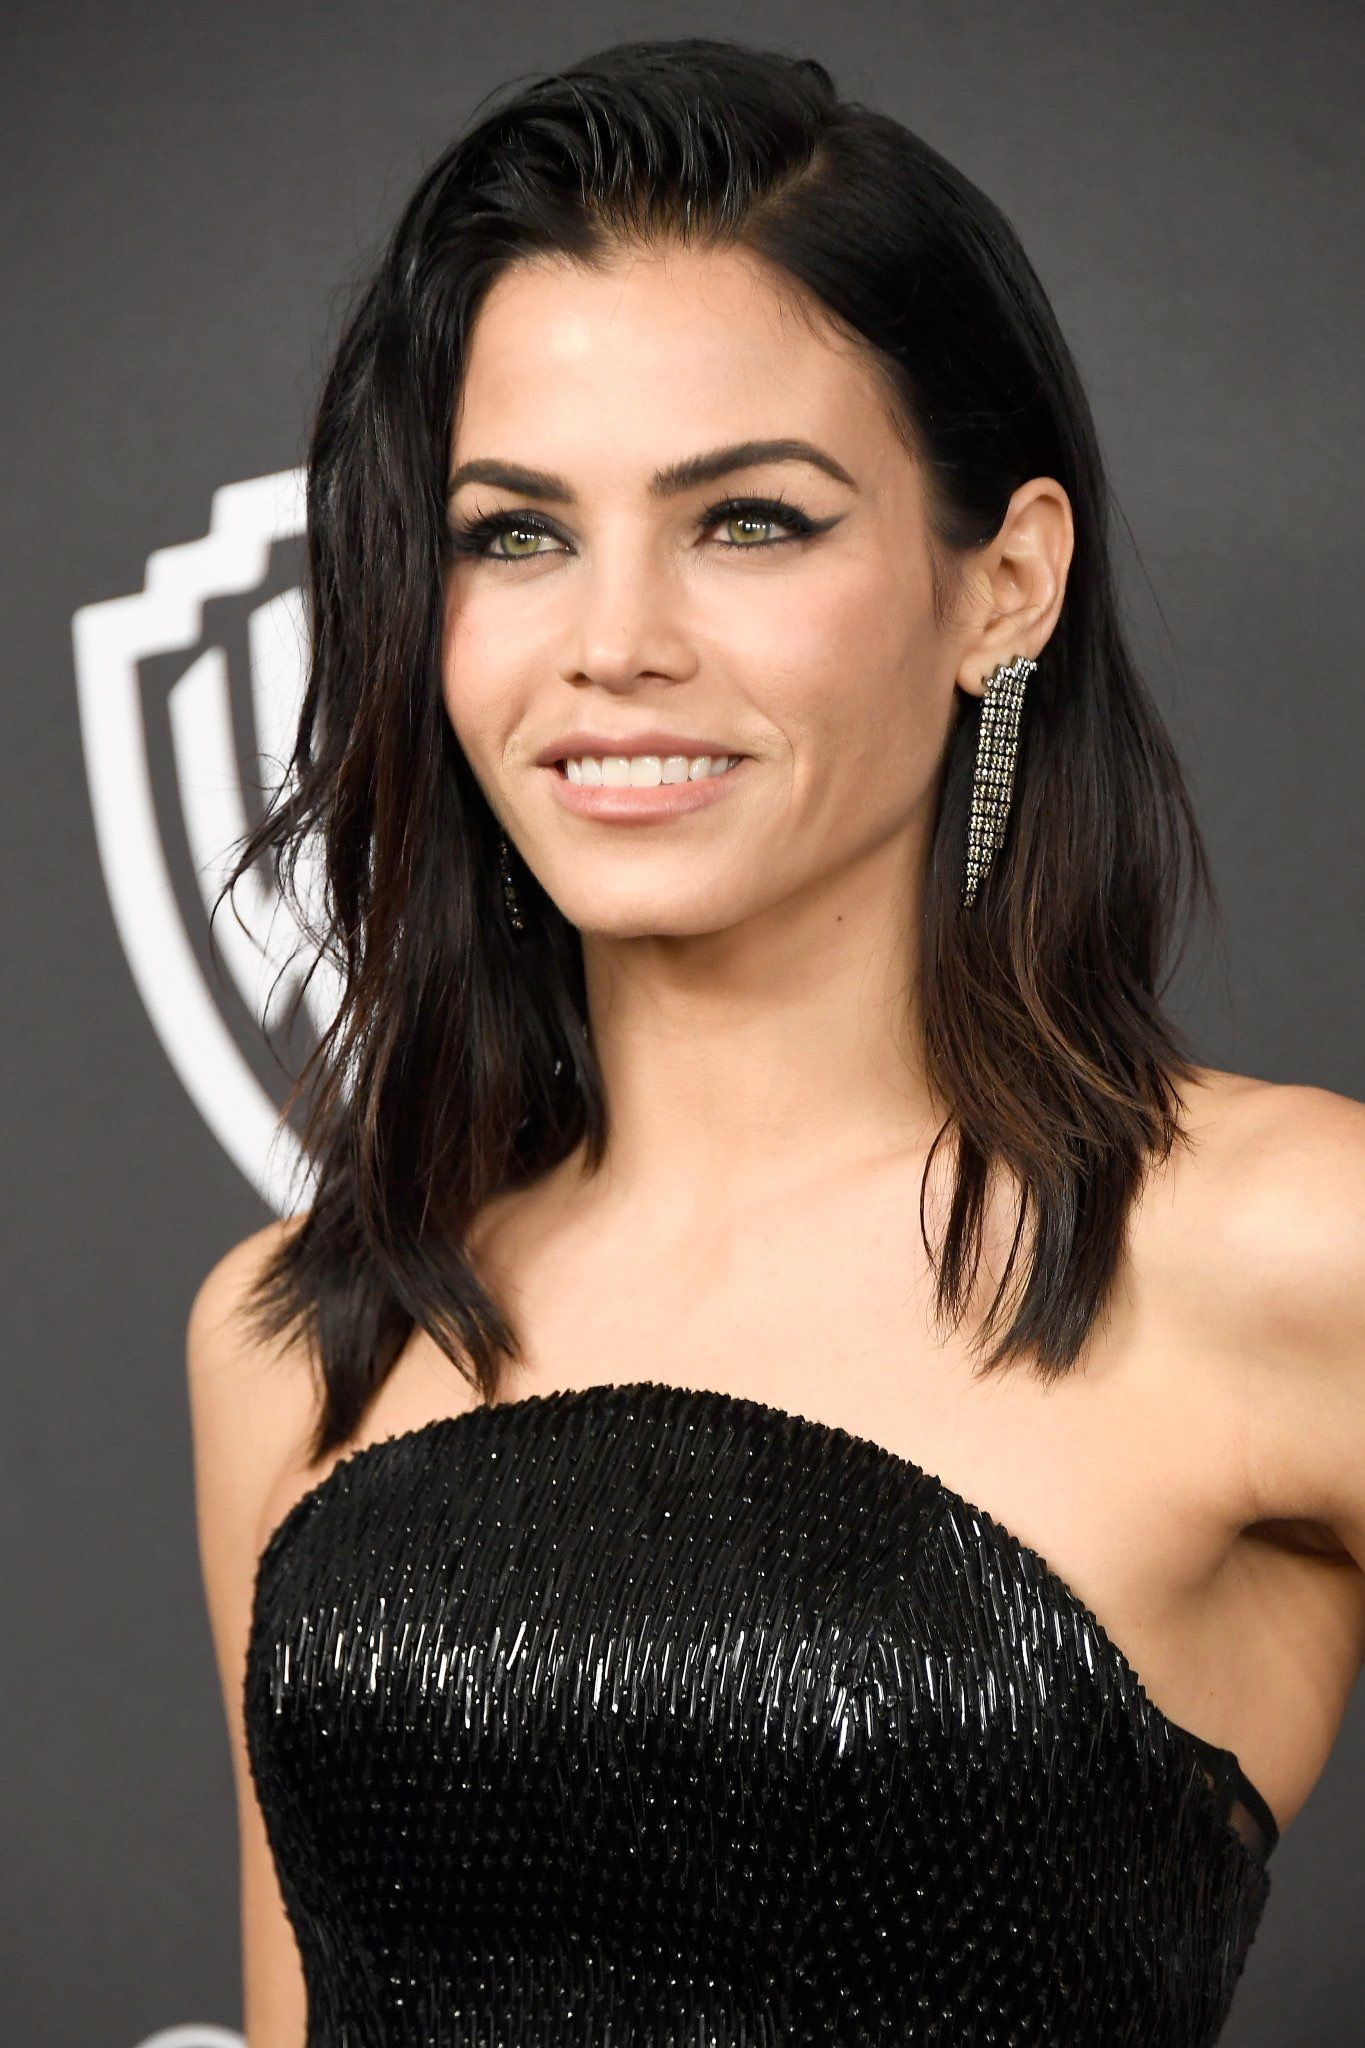 Boobs Jenna Dewan-Tatum naked (26 photo), Sexy, Cleavage, Twitter, bra 2017